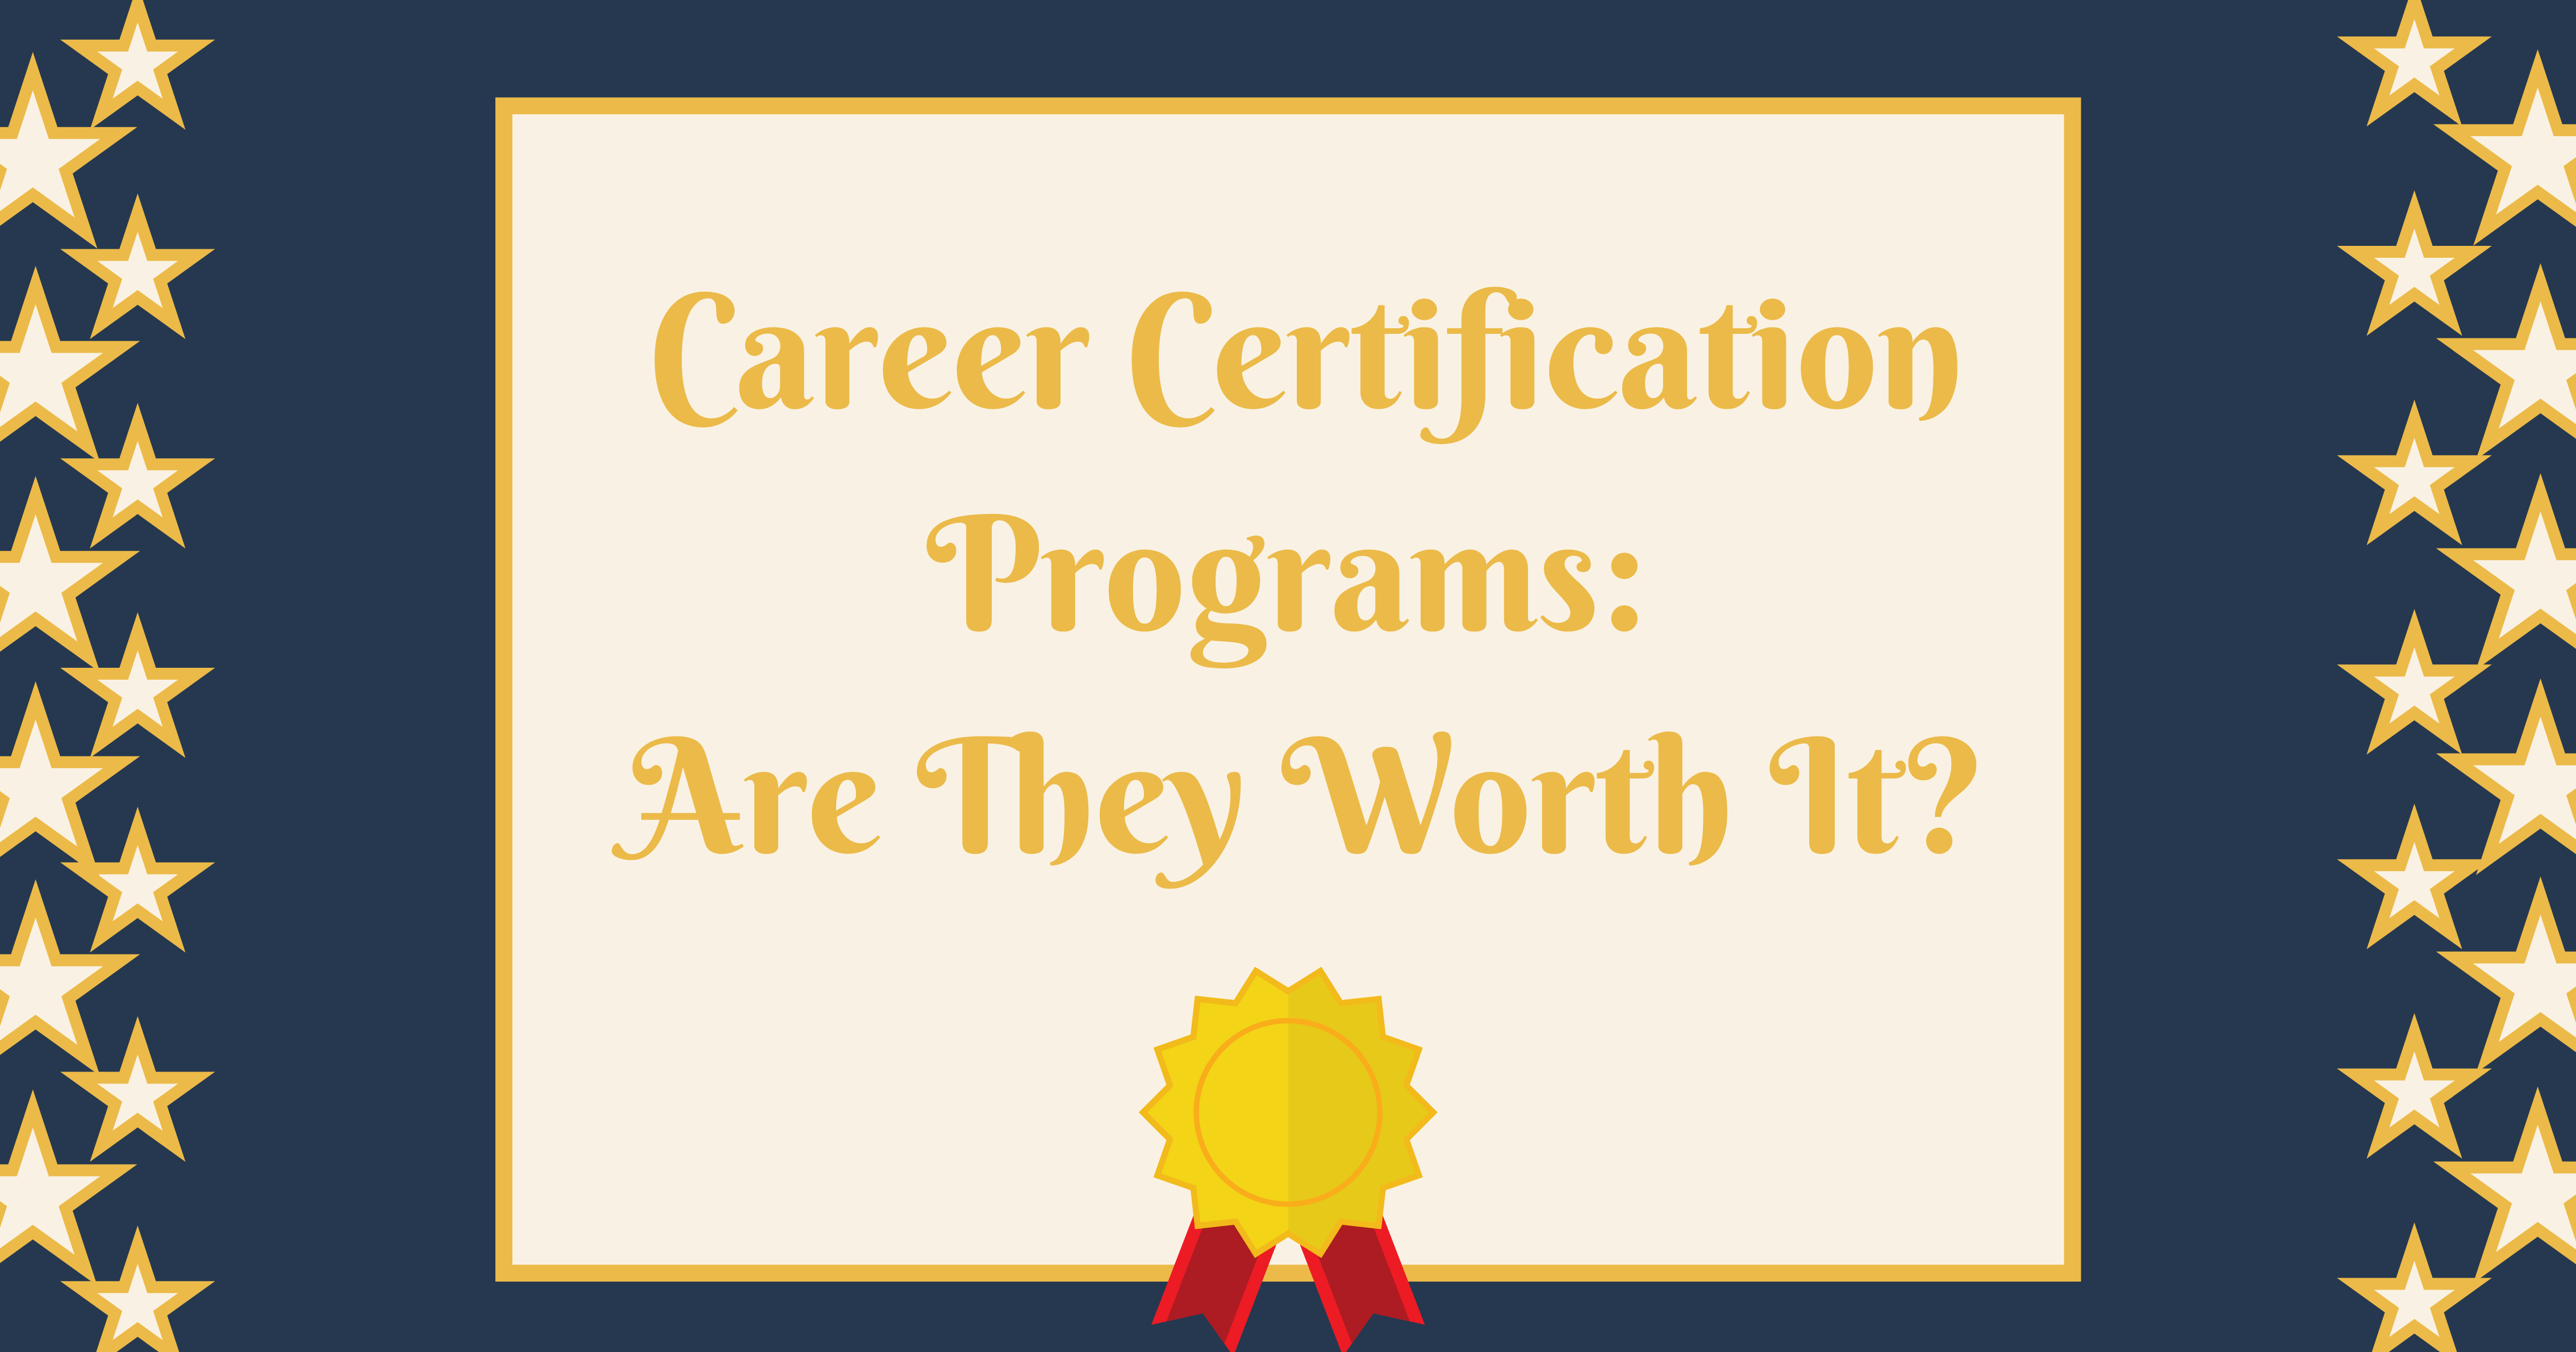 Career Certification Programs: Are They Worth It?